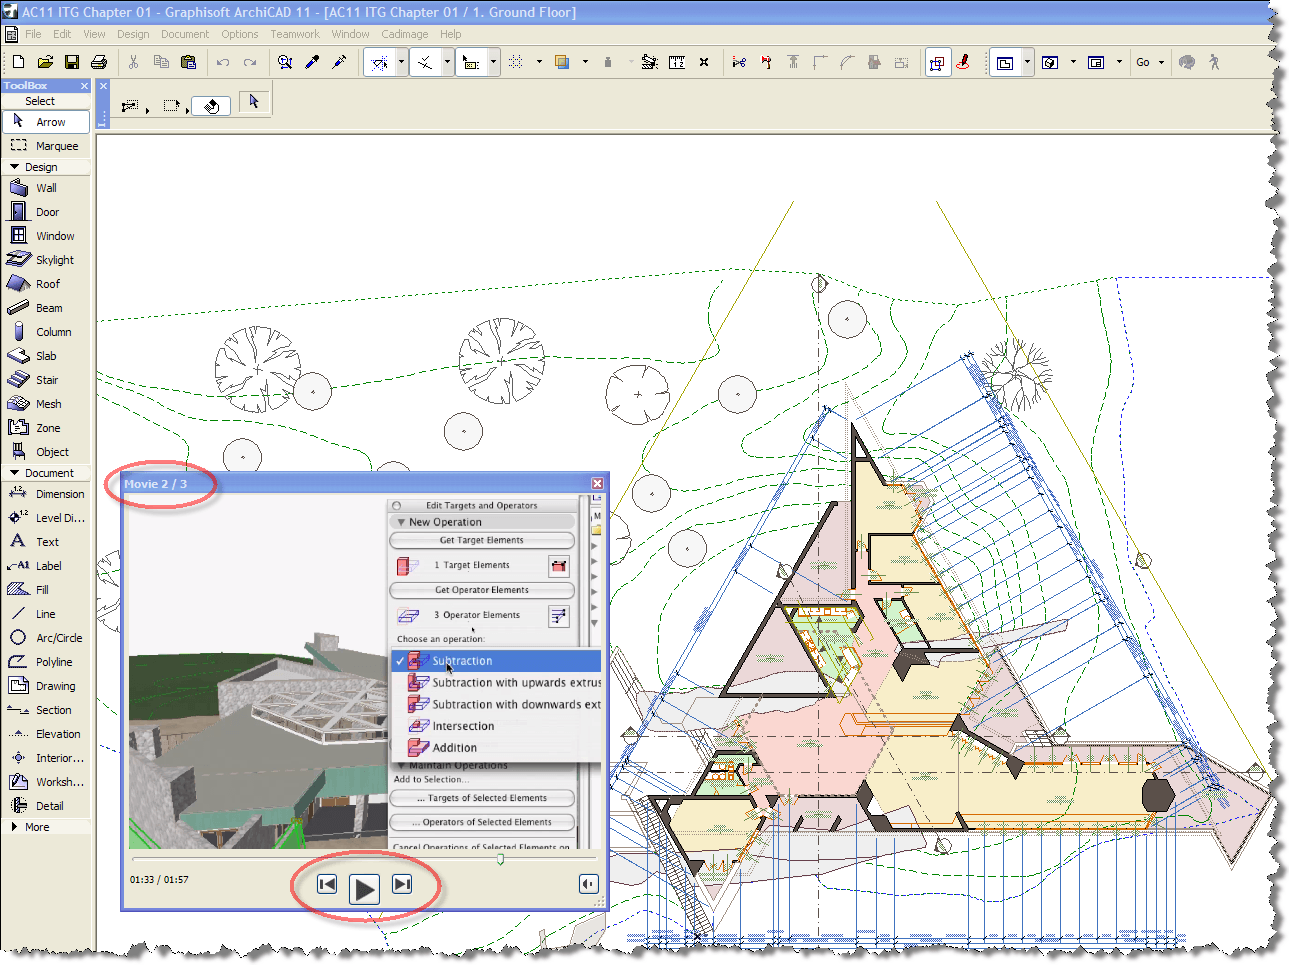 ArchiCAD Tutorial | The ArchiCAD BIM Experience Kit | Eric